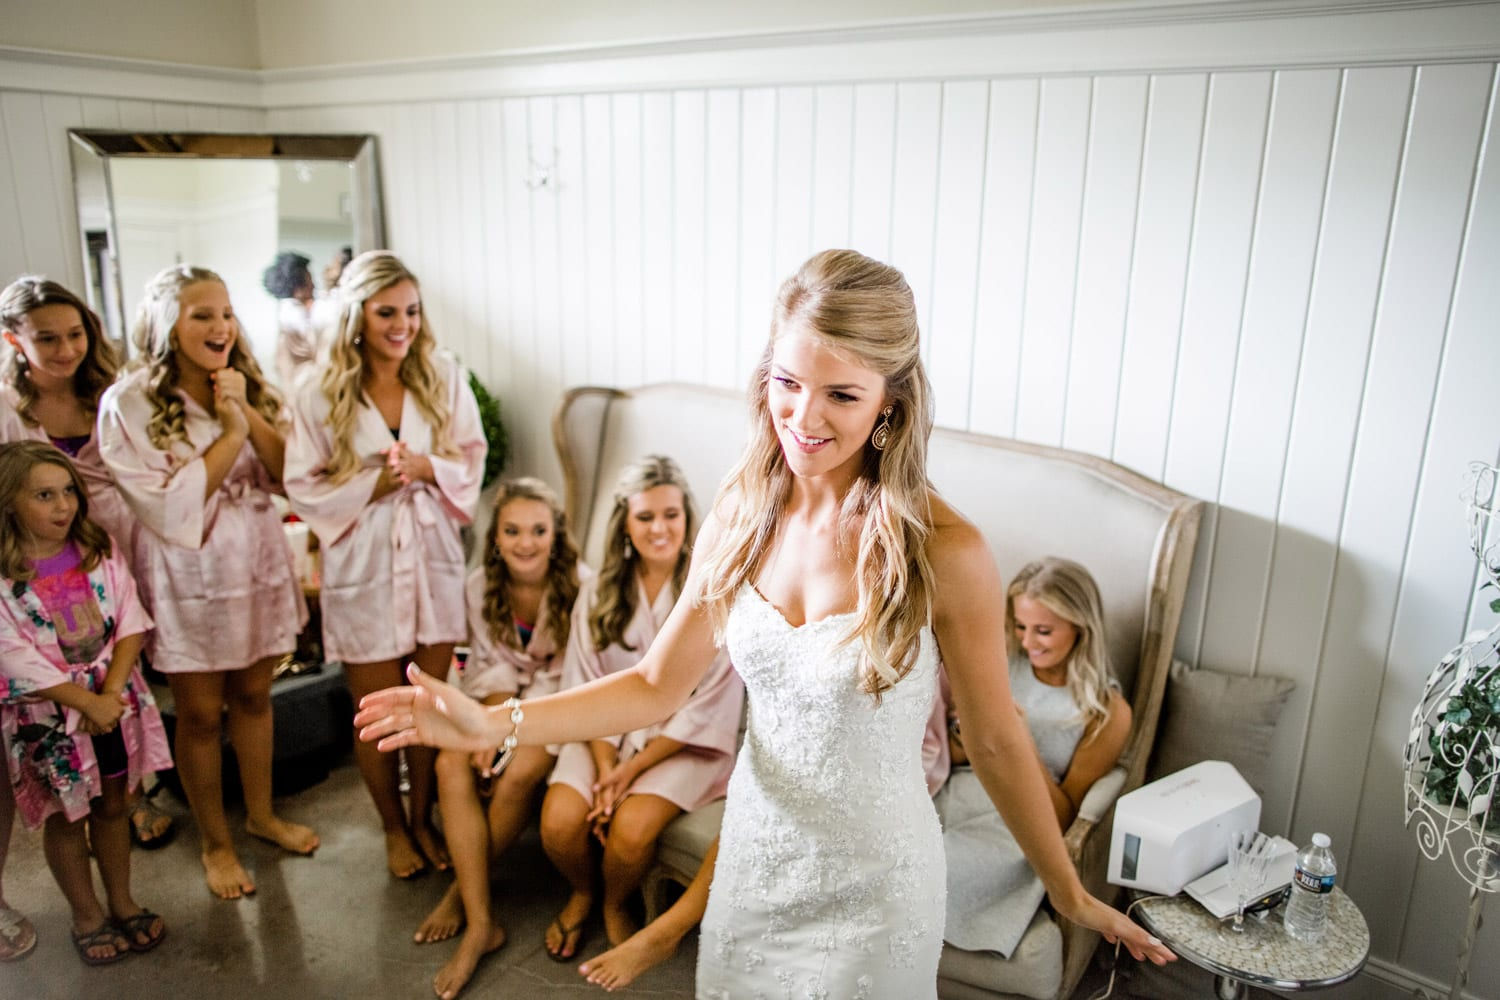 Bride showing off dress in bridal room with bridesmaids